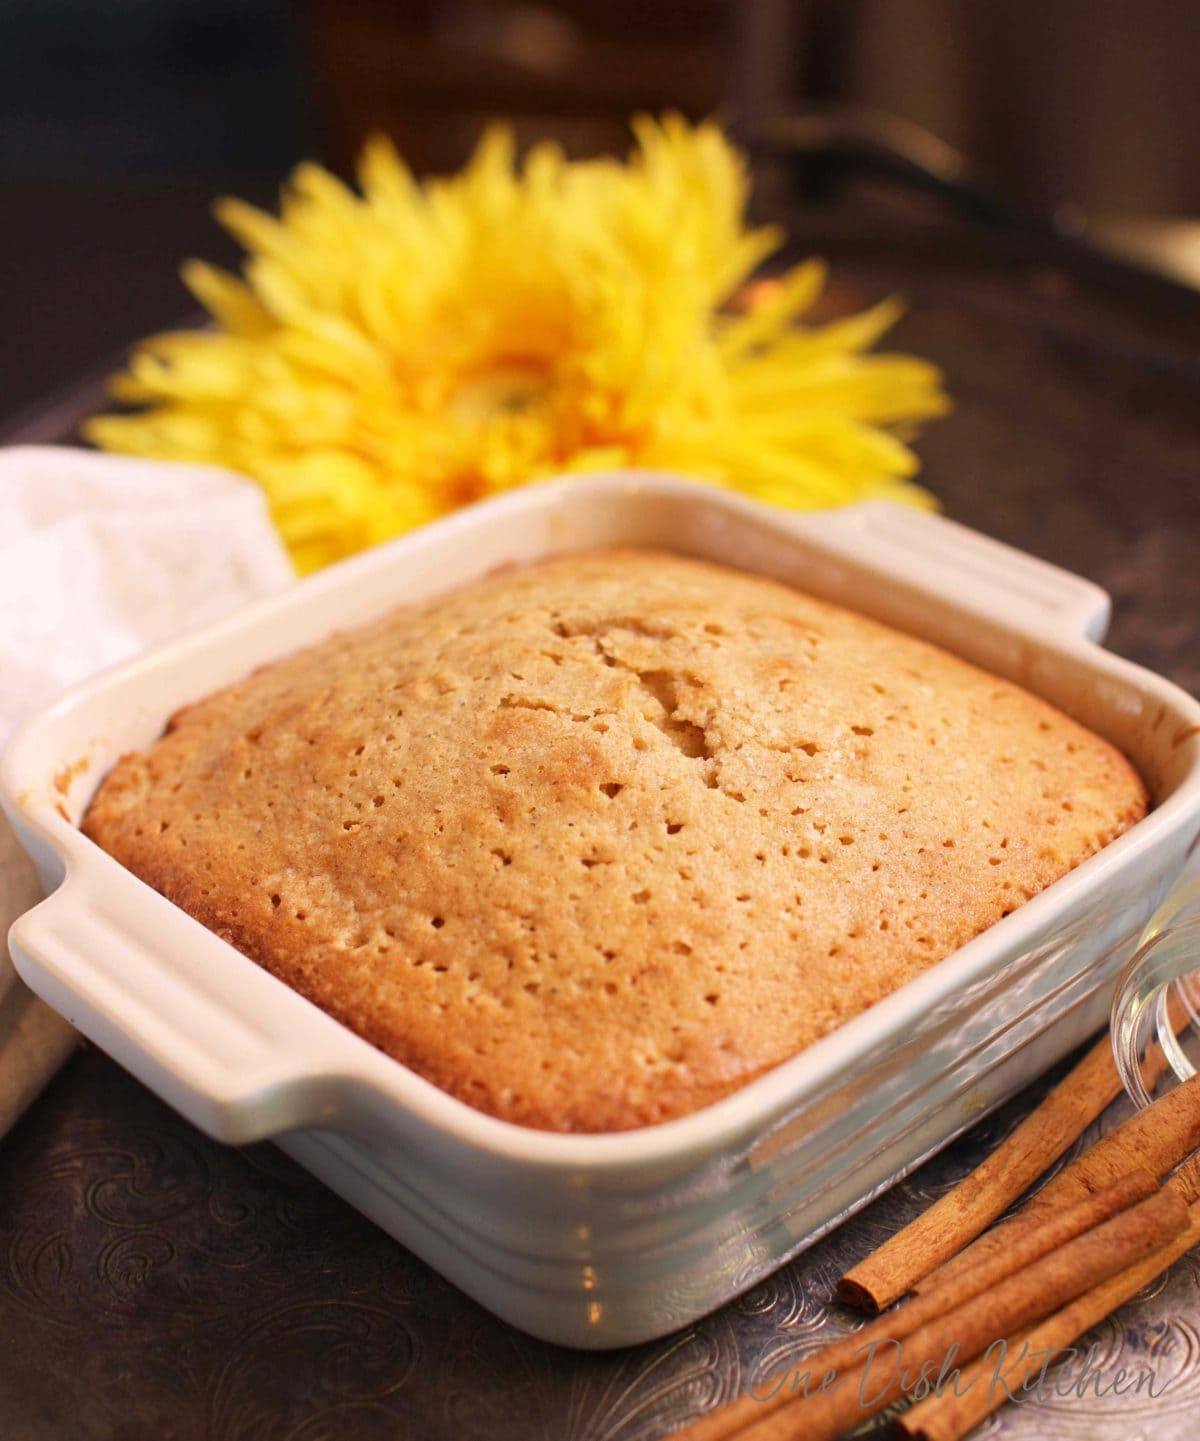 A spice cake in a small square baking dish next to yellow flowers and cinnamon sticks all on a metal tray